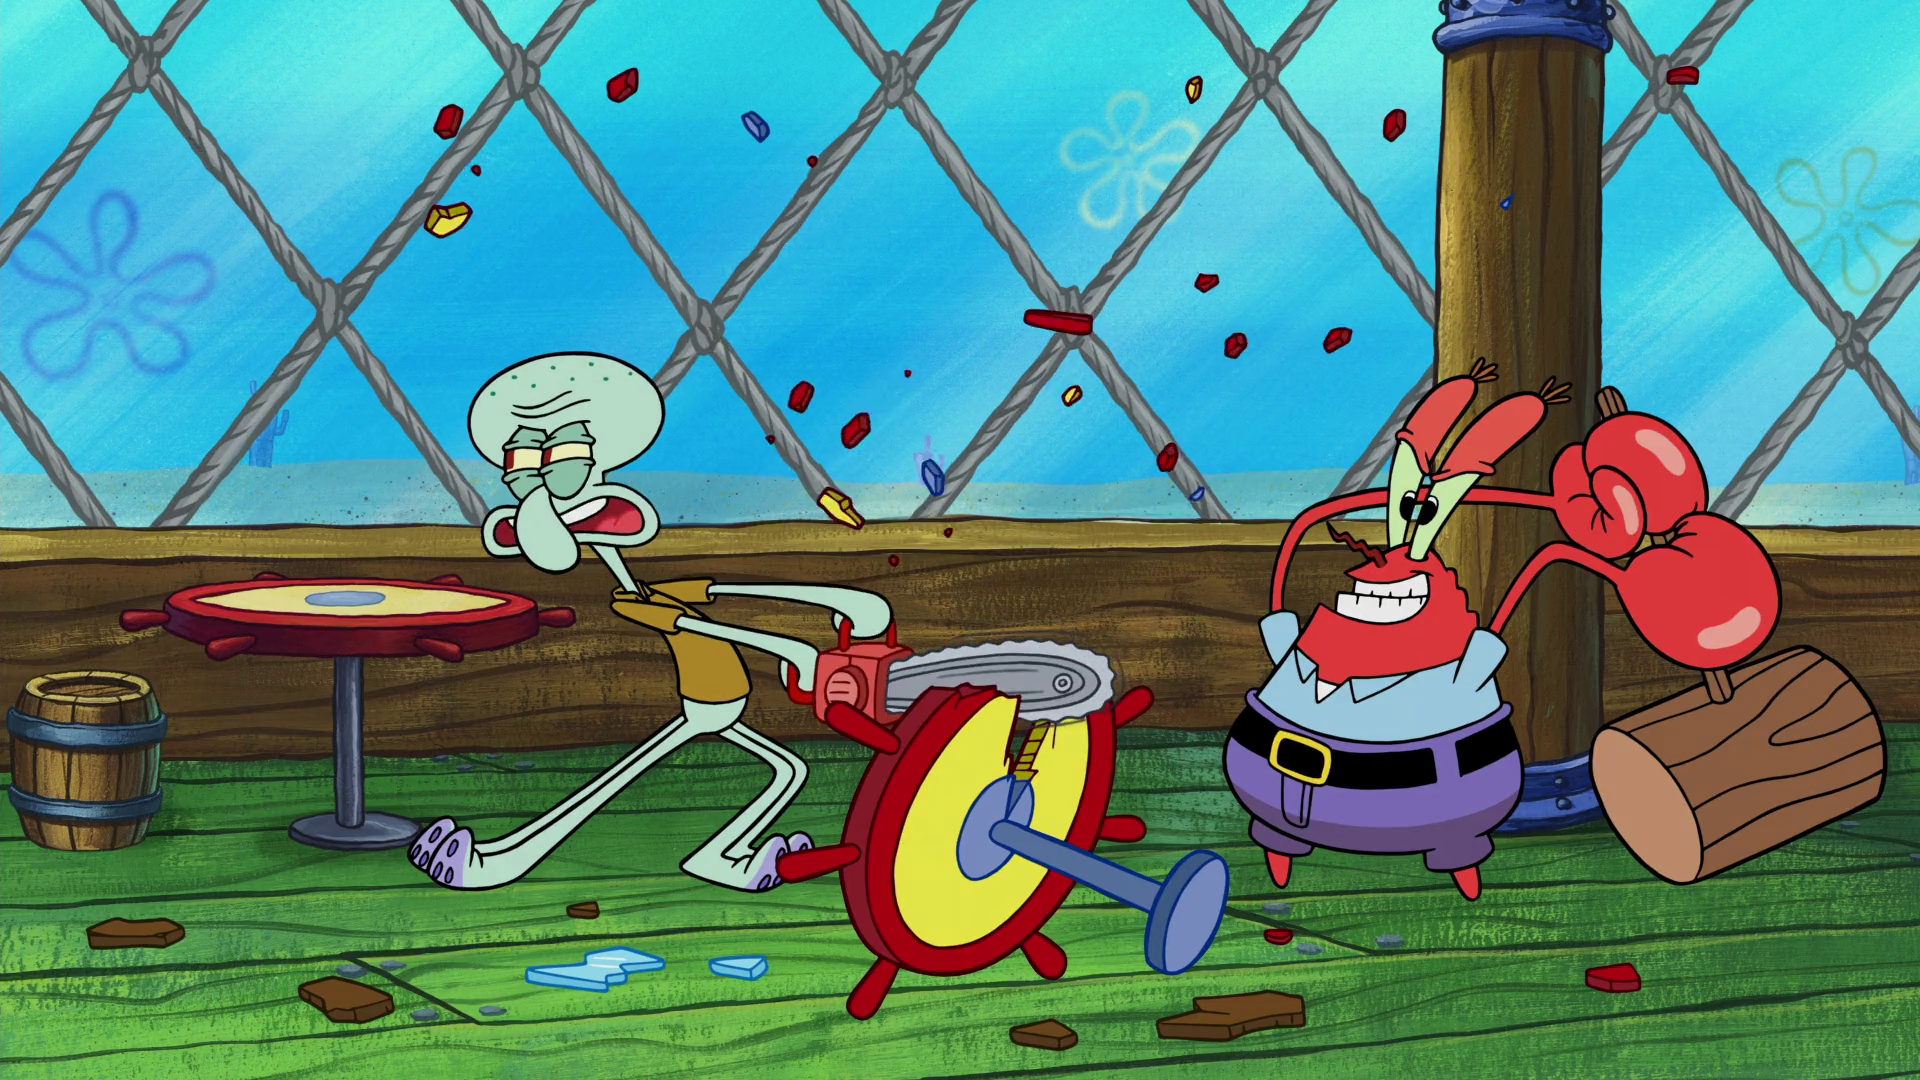 Squidward-Mr. Krabs relationship | Encyclopedia ...